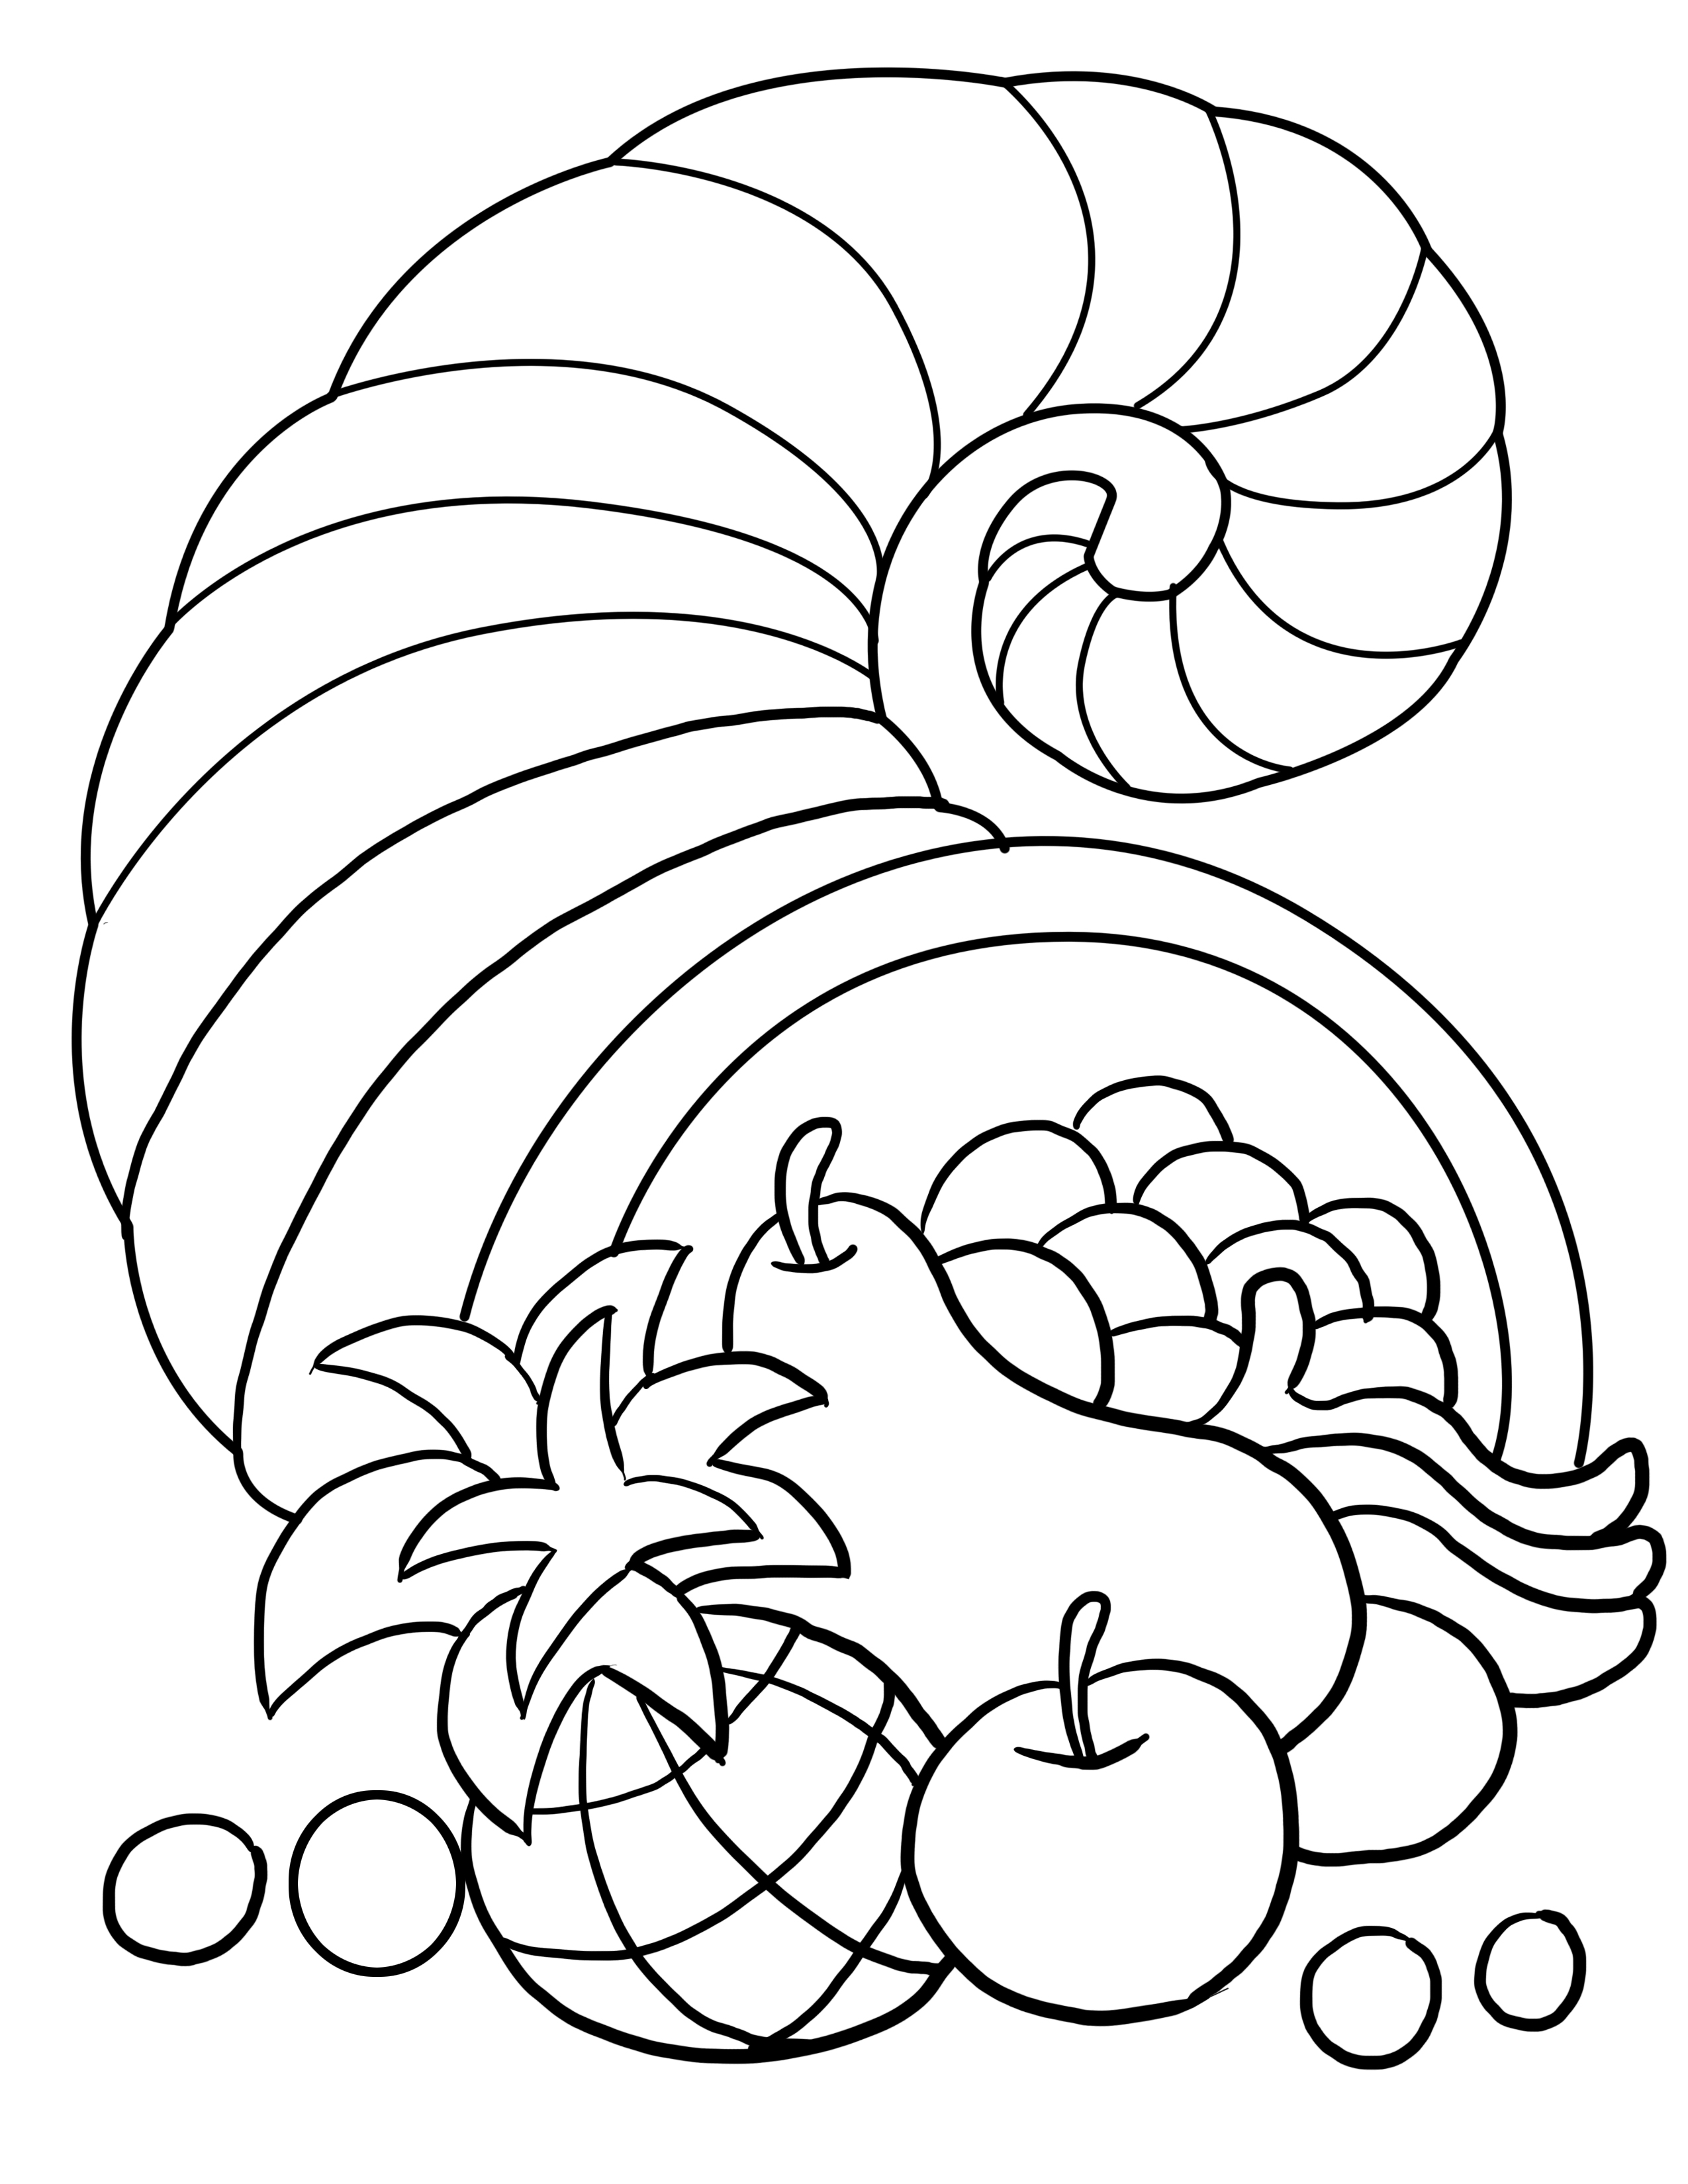 2550x3300 apple coloring pages for kindergarten coloring - Coloring Pages For Kindergarten 2